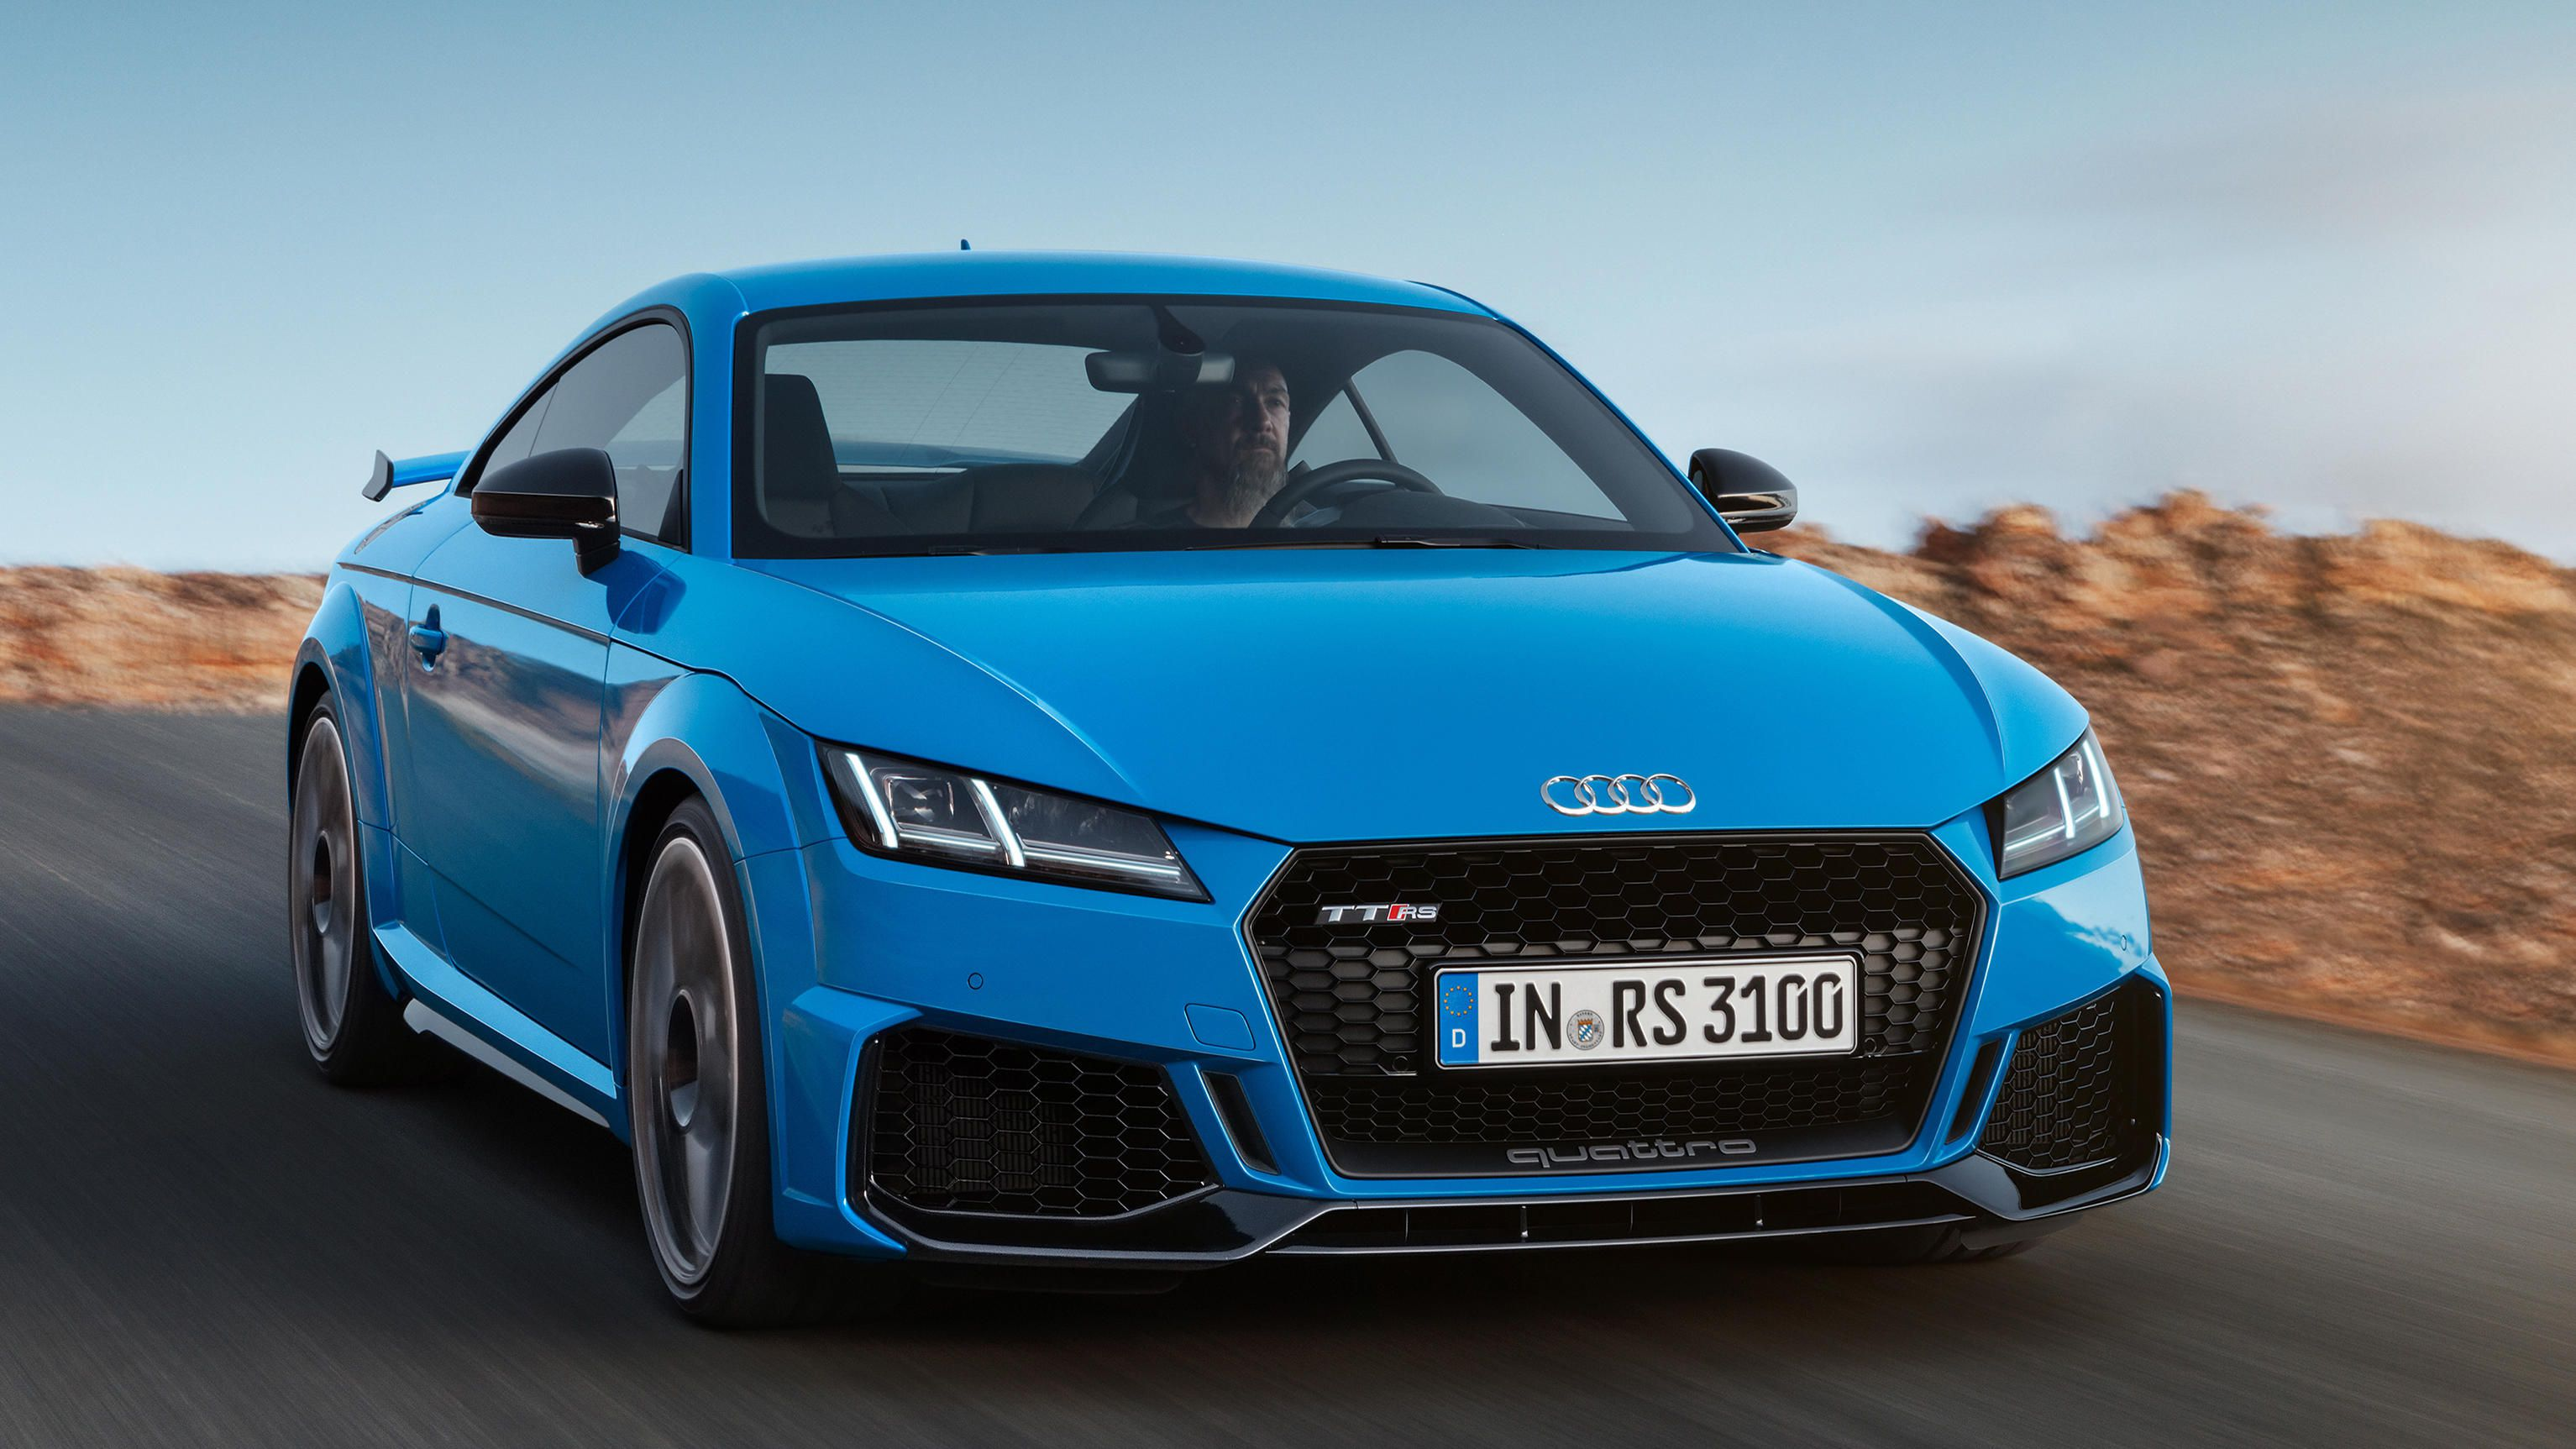 83 The Best 2019 Audi Tt Rs Overview